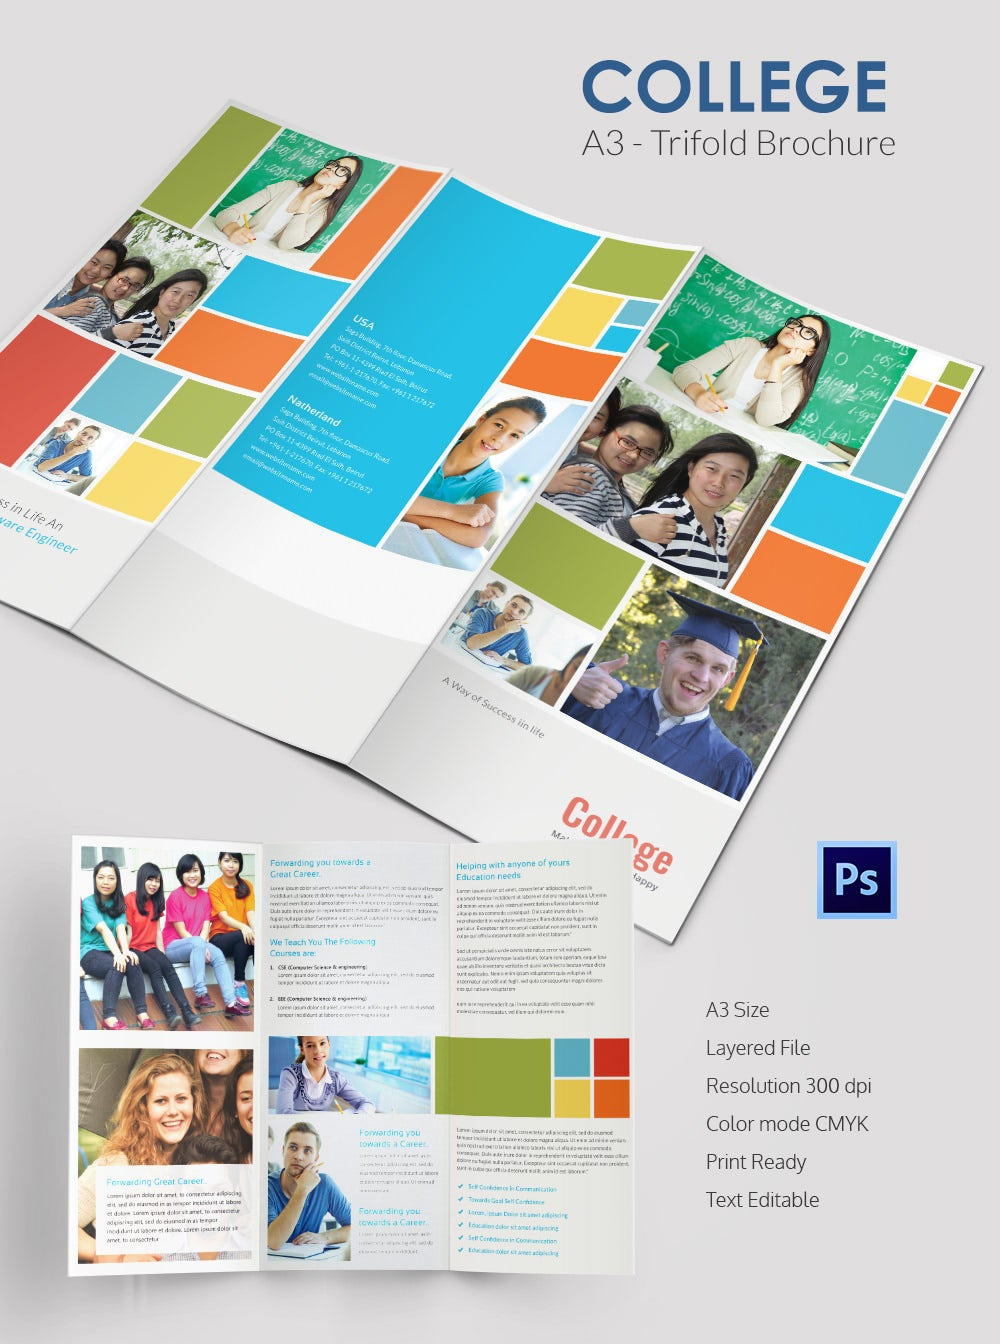 college brochure templates free download college brochure template 34 free jpg psd indesign